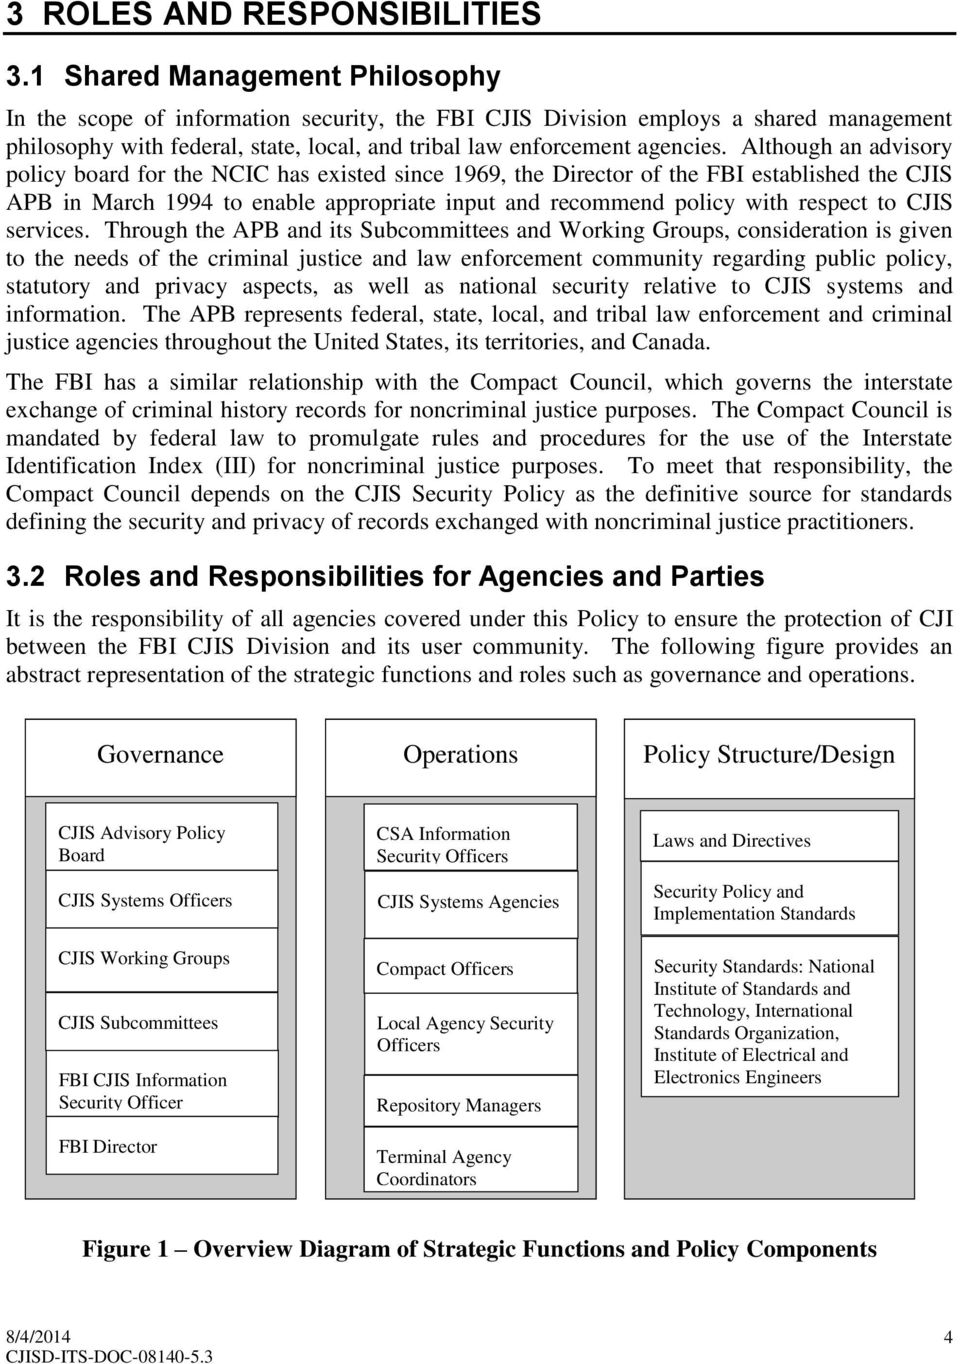 Although an advisory policy board for the NCIC has existed since 1969, the Director of the FBI established the CJIS APB in March 1994 to enable appropriate input and recommend policy with respect to